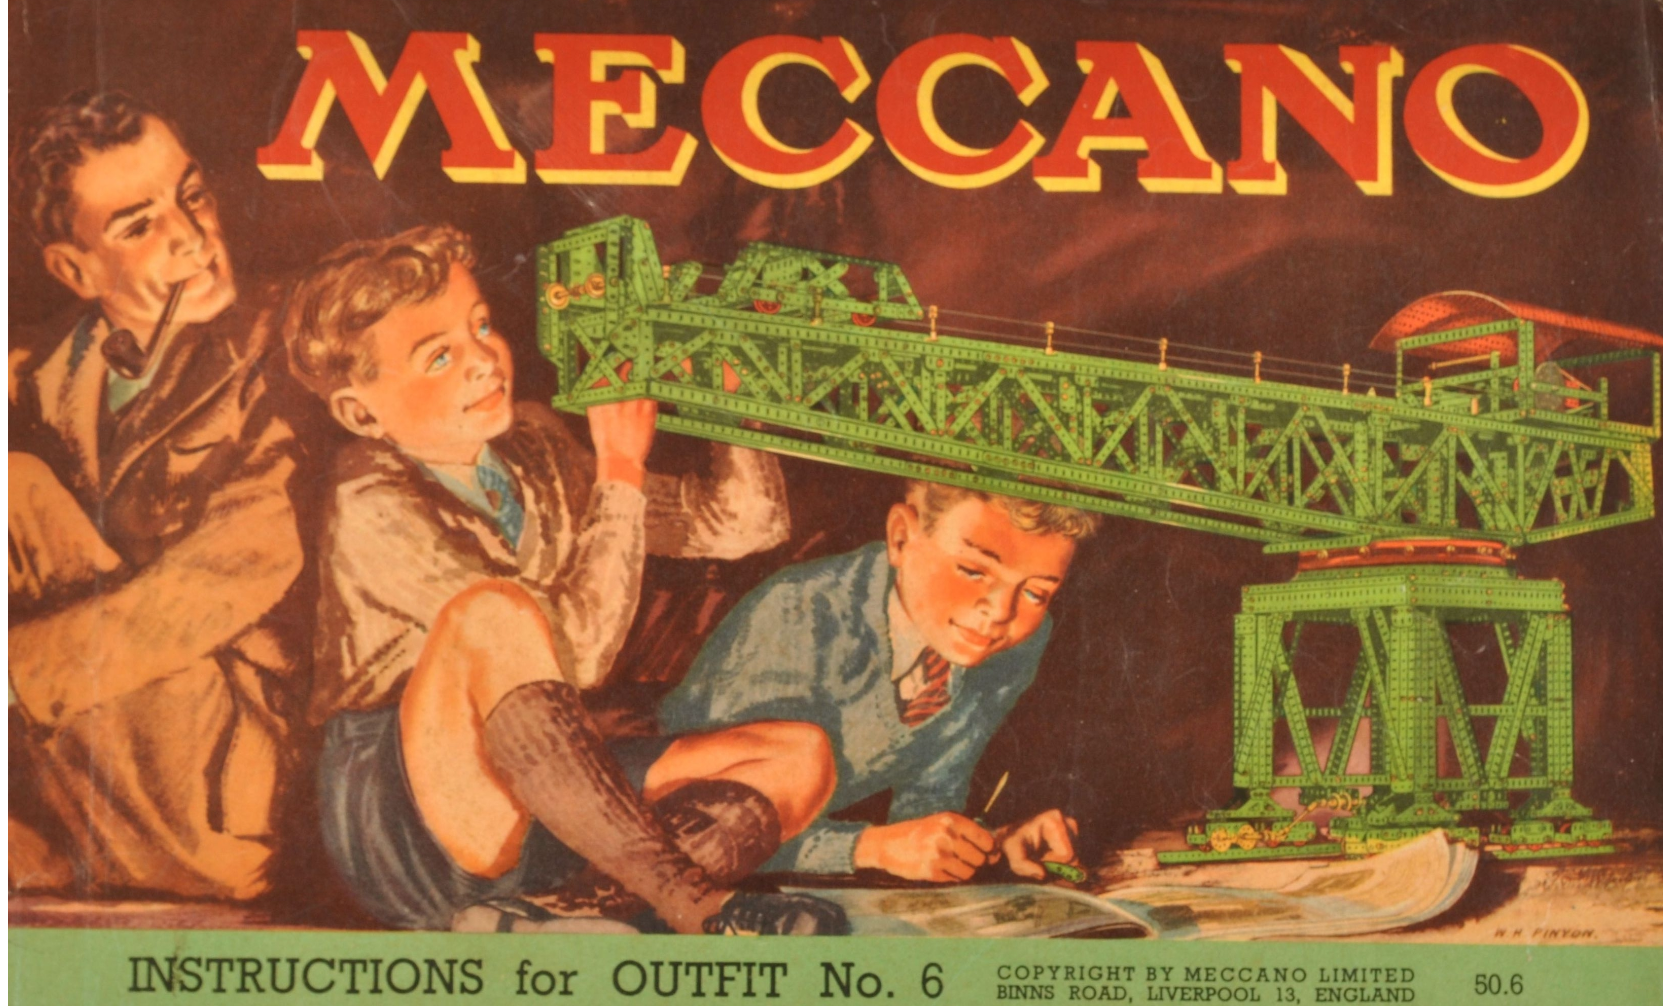 An illustration of two boys building a large Meccano crane, watched by their father